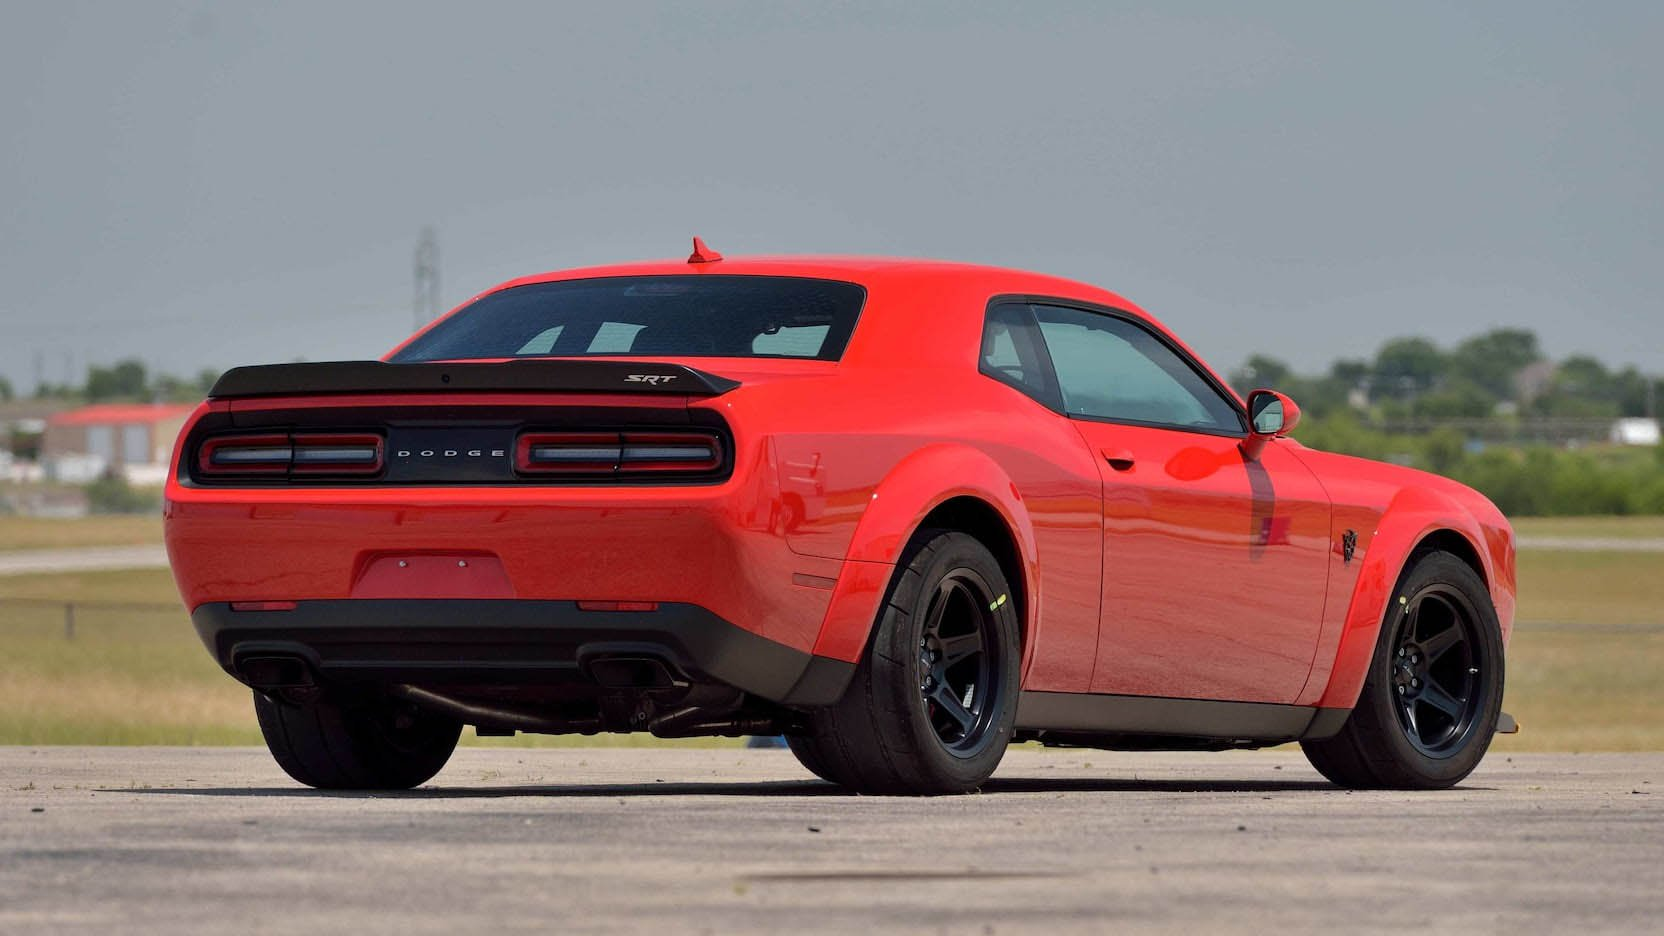 Two Dodge Challenger Demon in auction (20)